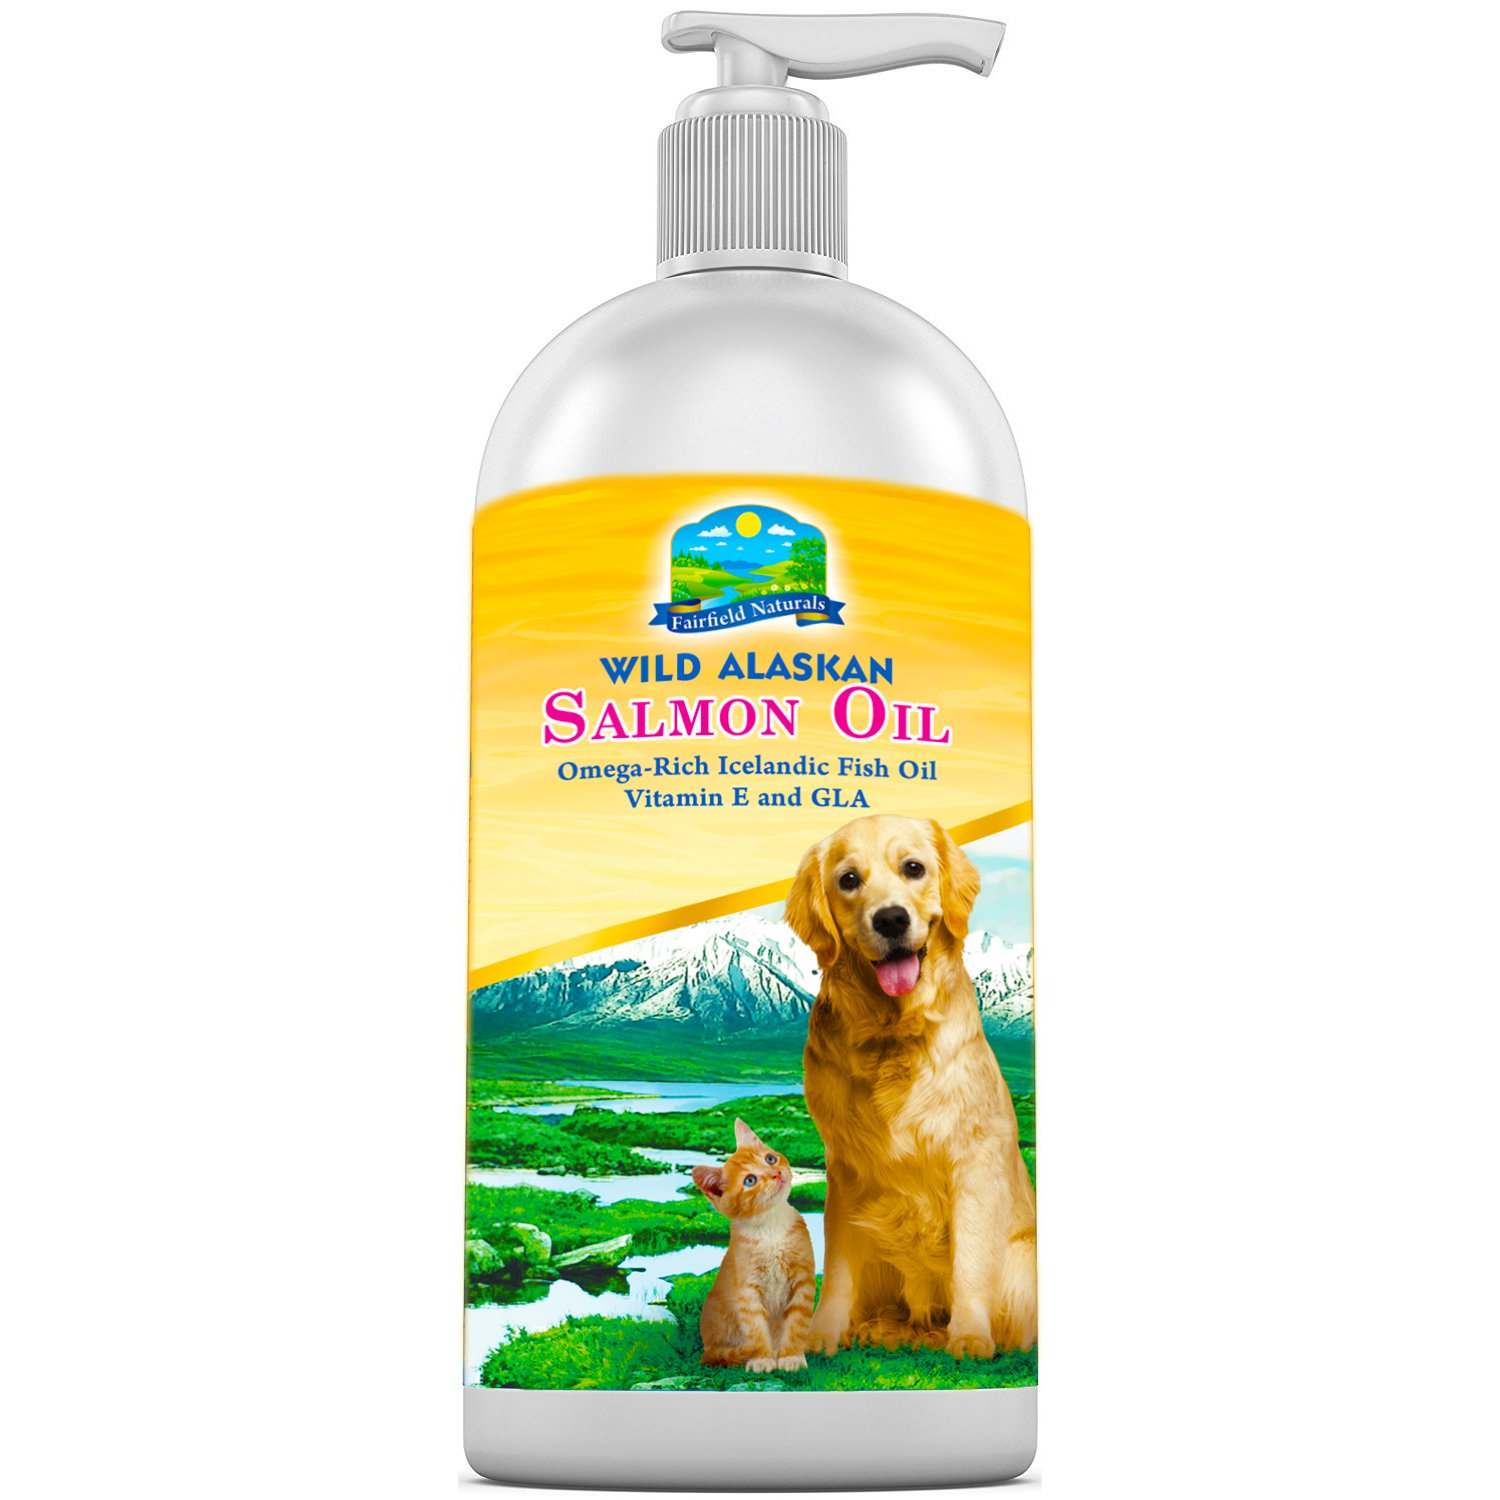 FAIRFIELD NATURALS OMEGA 3 Pet Fish Oil For Dogs & Cats - Organic Wild Alaskan Salmon Fish Oil | Supports Joint Function, Immune & Heart Health - All Natural DHA & EPA Fatty Acids For Skin & Coat 16OZ by Fairfield Naturals